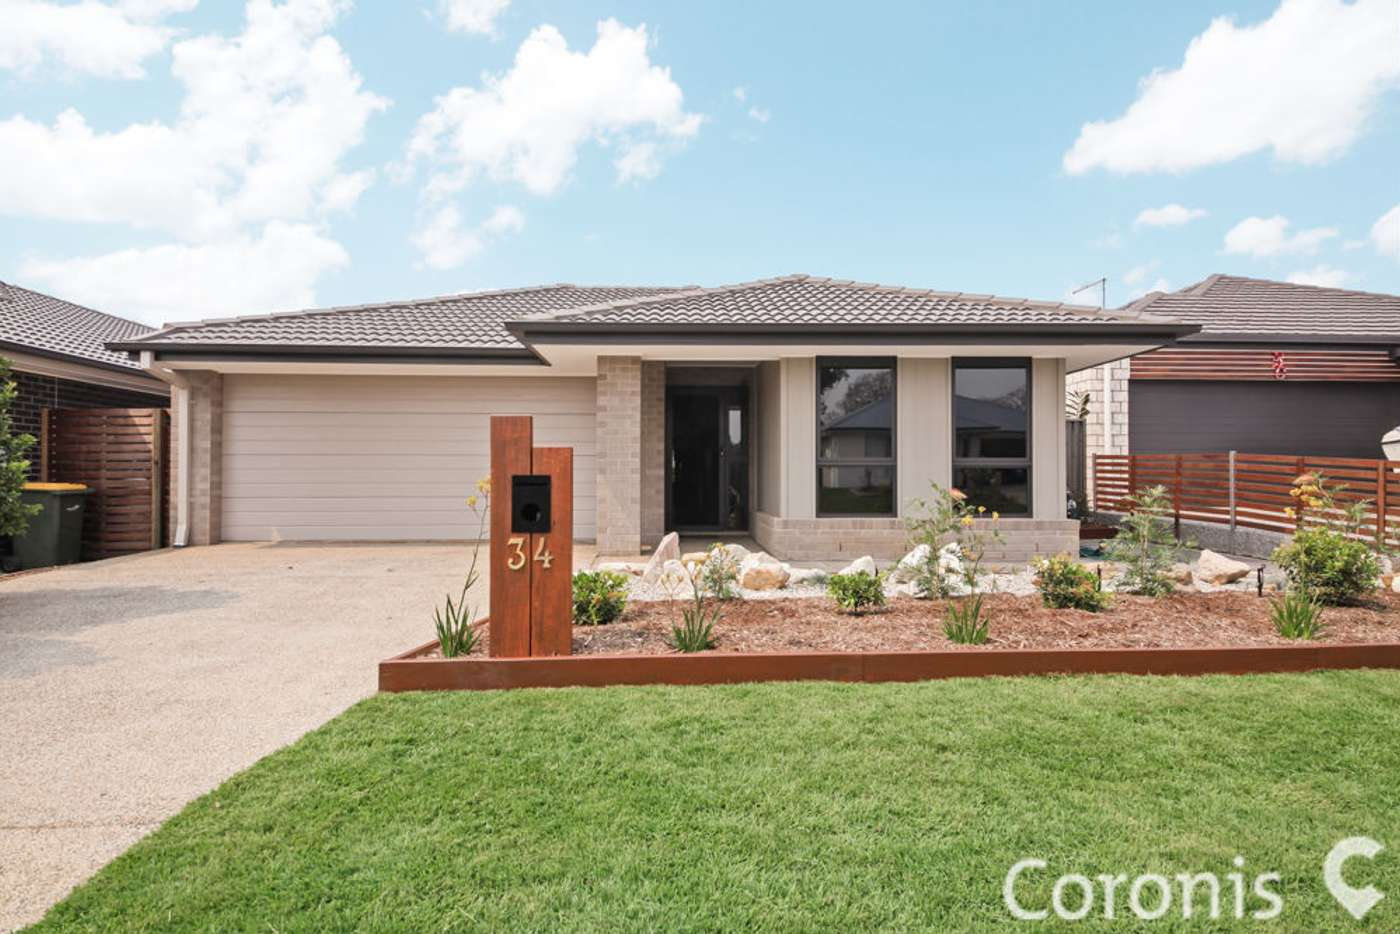 Main view of Homely house listing, 34 Riverside Circuit, Joyner QLD 4500